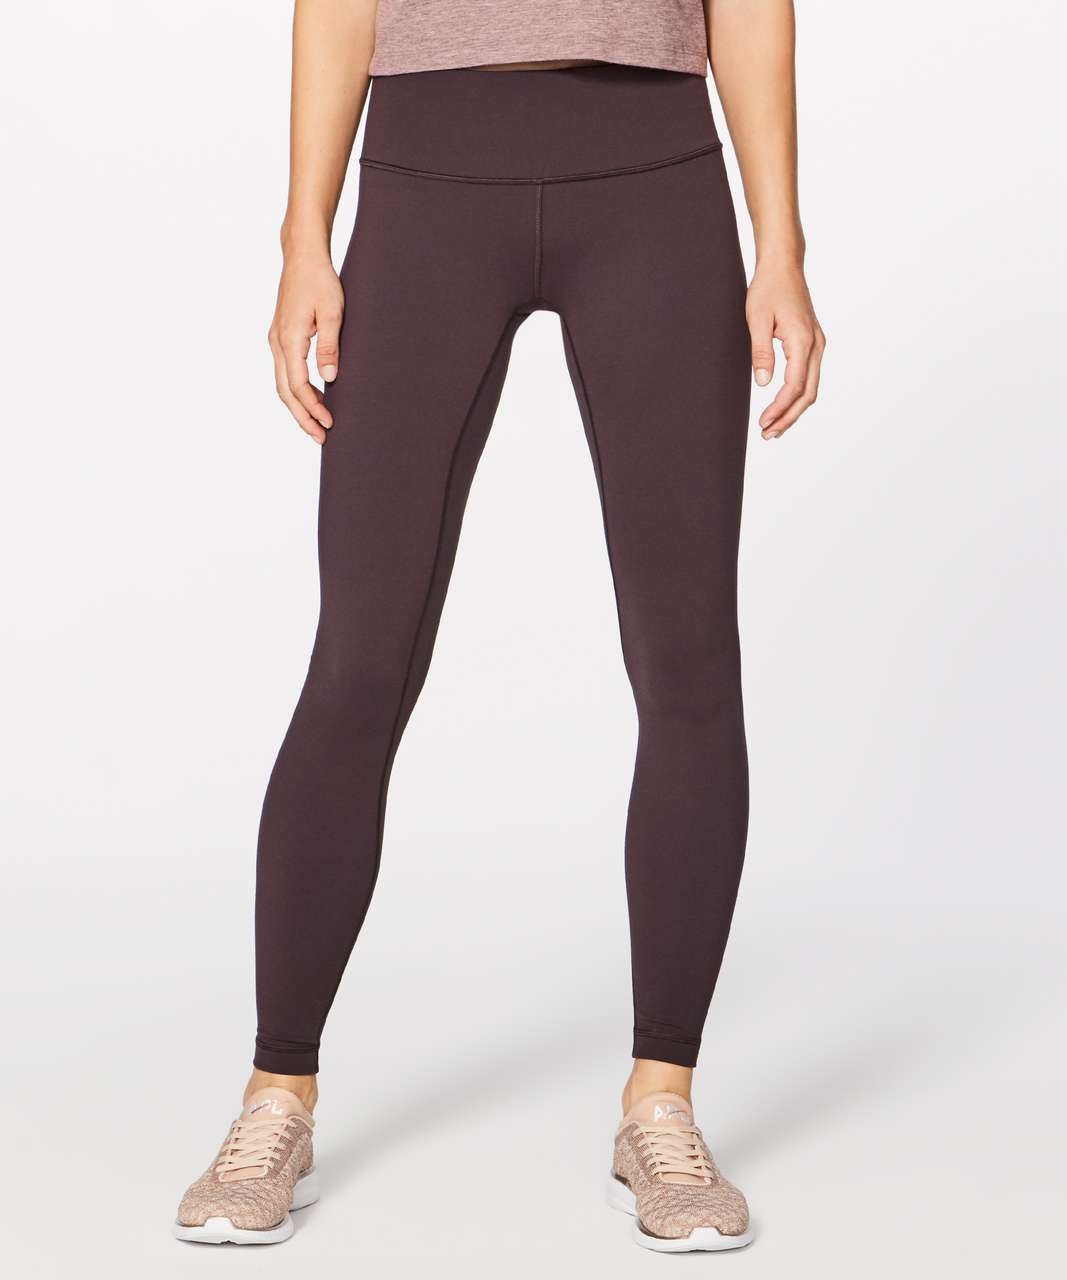 fd66a6040ec29 Lululemon Wunder Under Low-Rise Tight (Full-On Luon 28